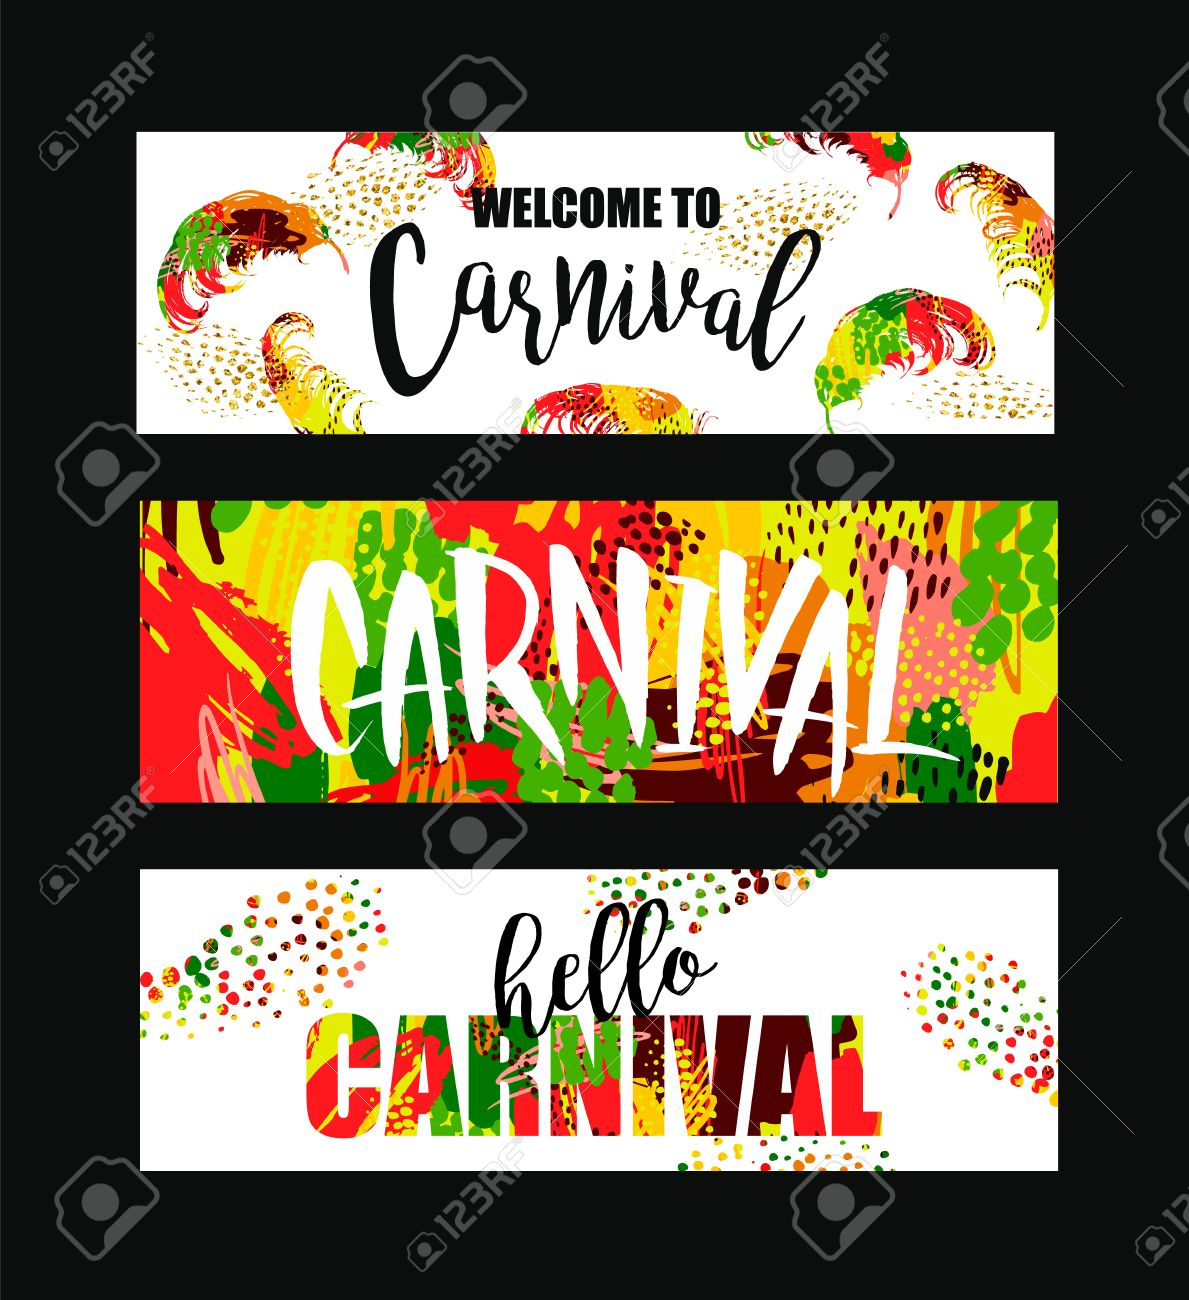 Carnival. Bright festive banners trending abstract style. Vector illustration - 69936261